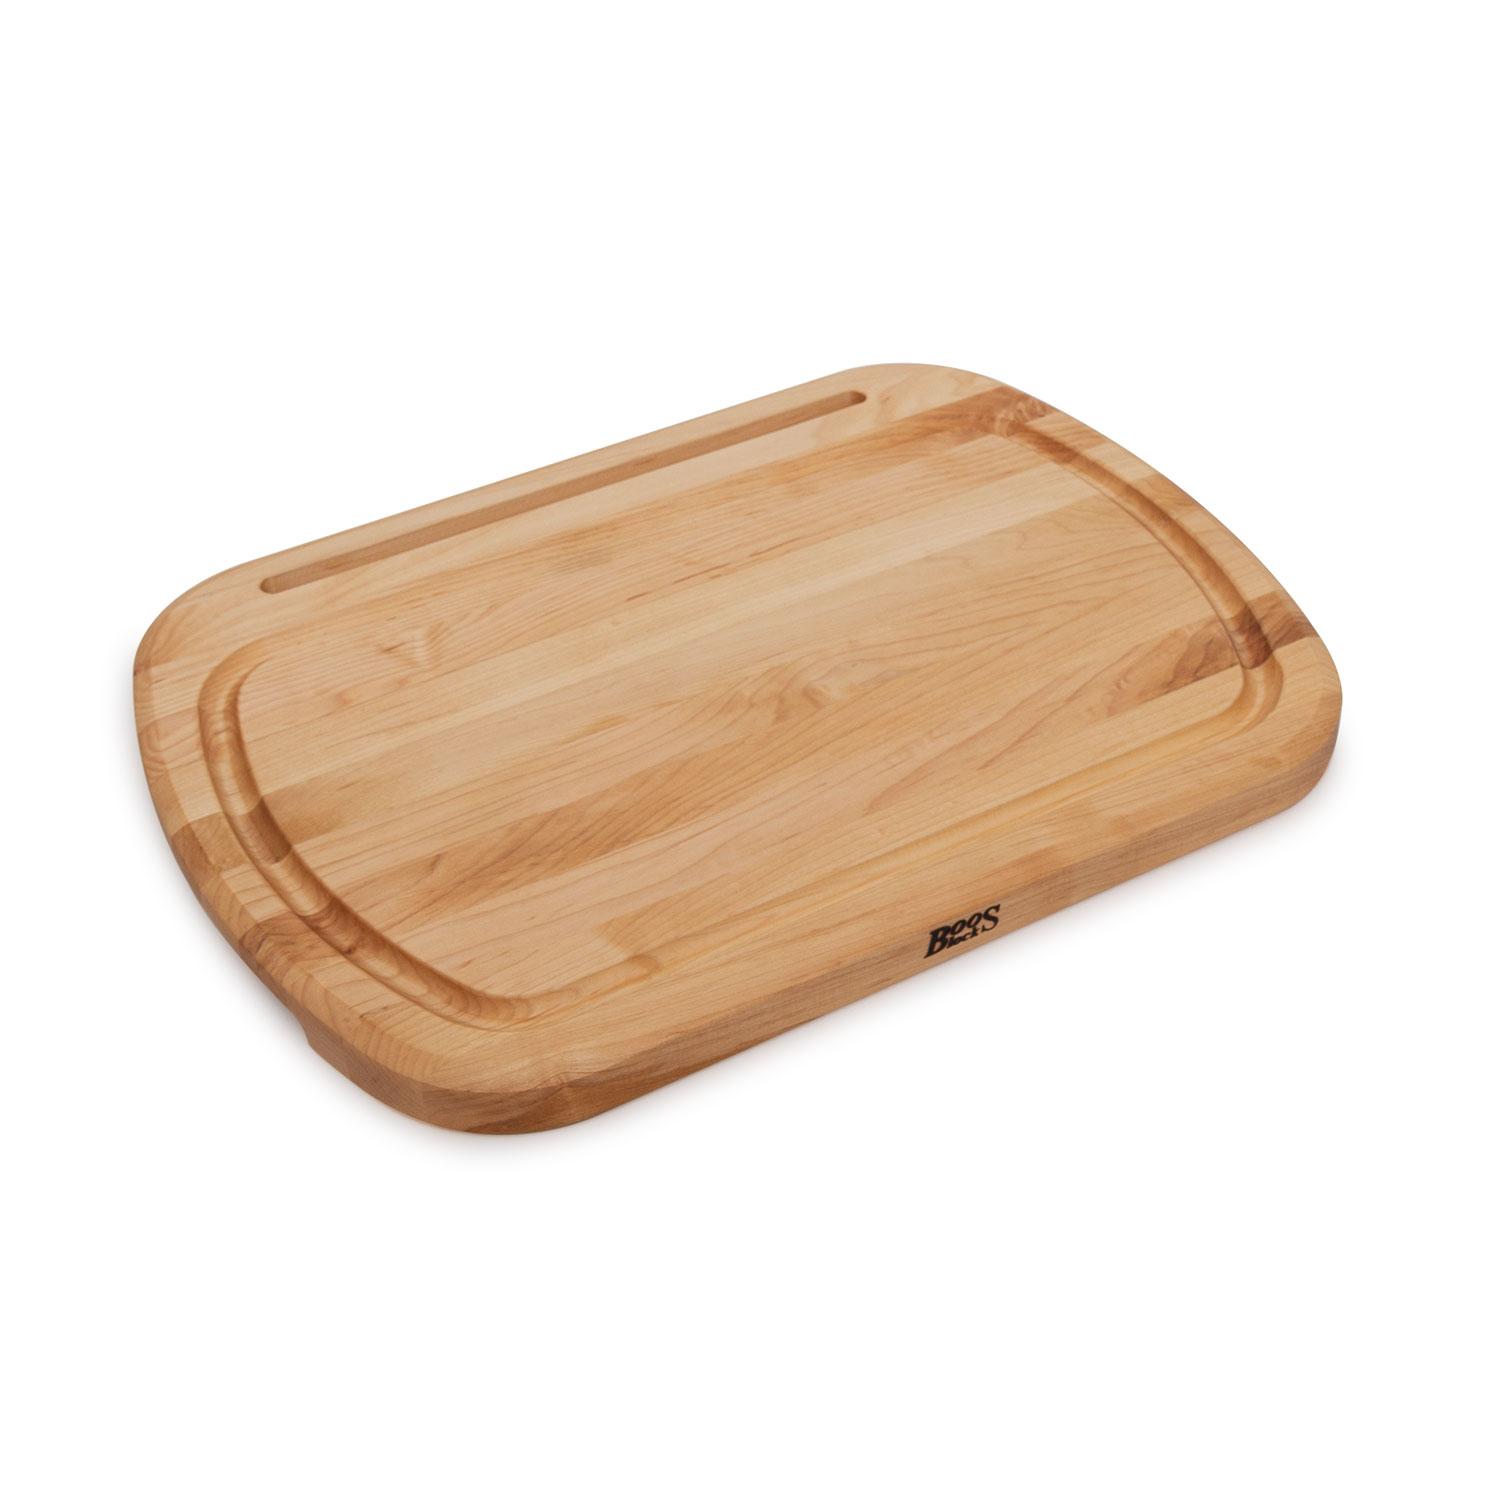 John Boos I-BLOCKPRO-M2015125 cutting board, wood